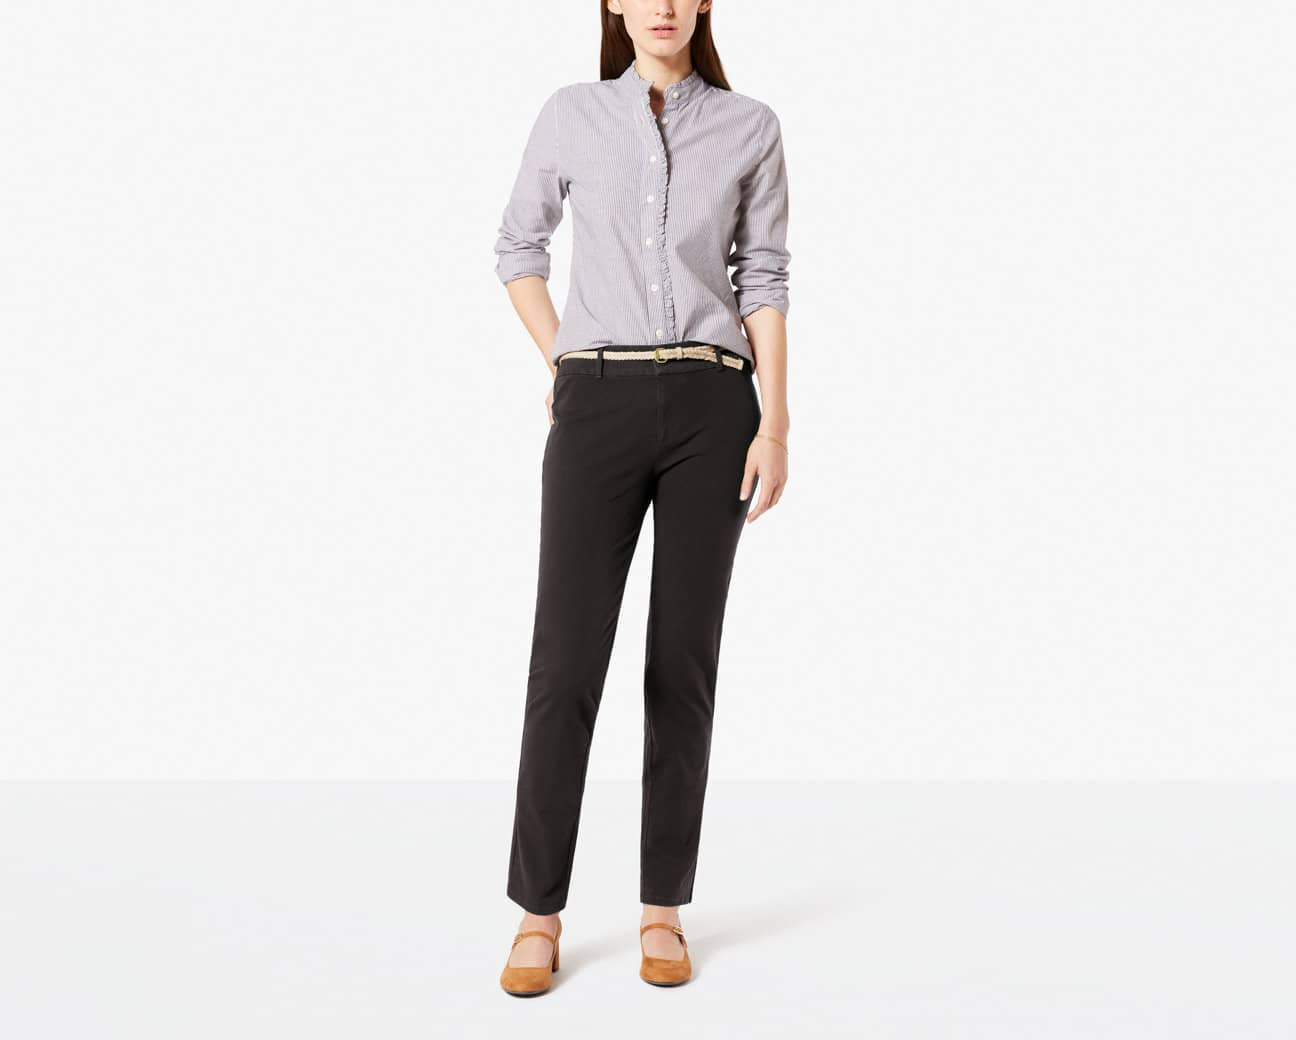 Dockers Women's Sale Items Additional 50% Off: Ideal Slim Pant (3 colors) 2 for $27 + free shipping ($13.50 each)